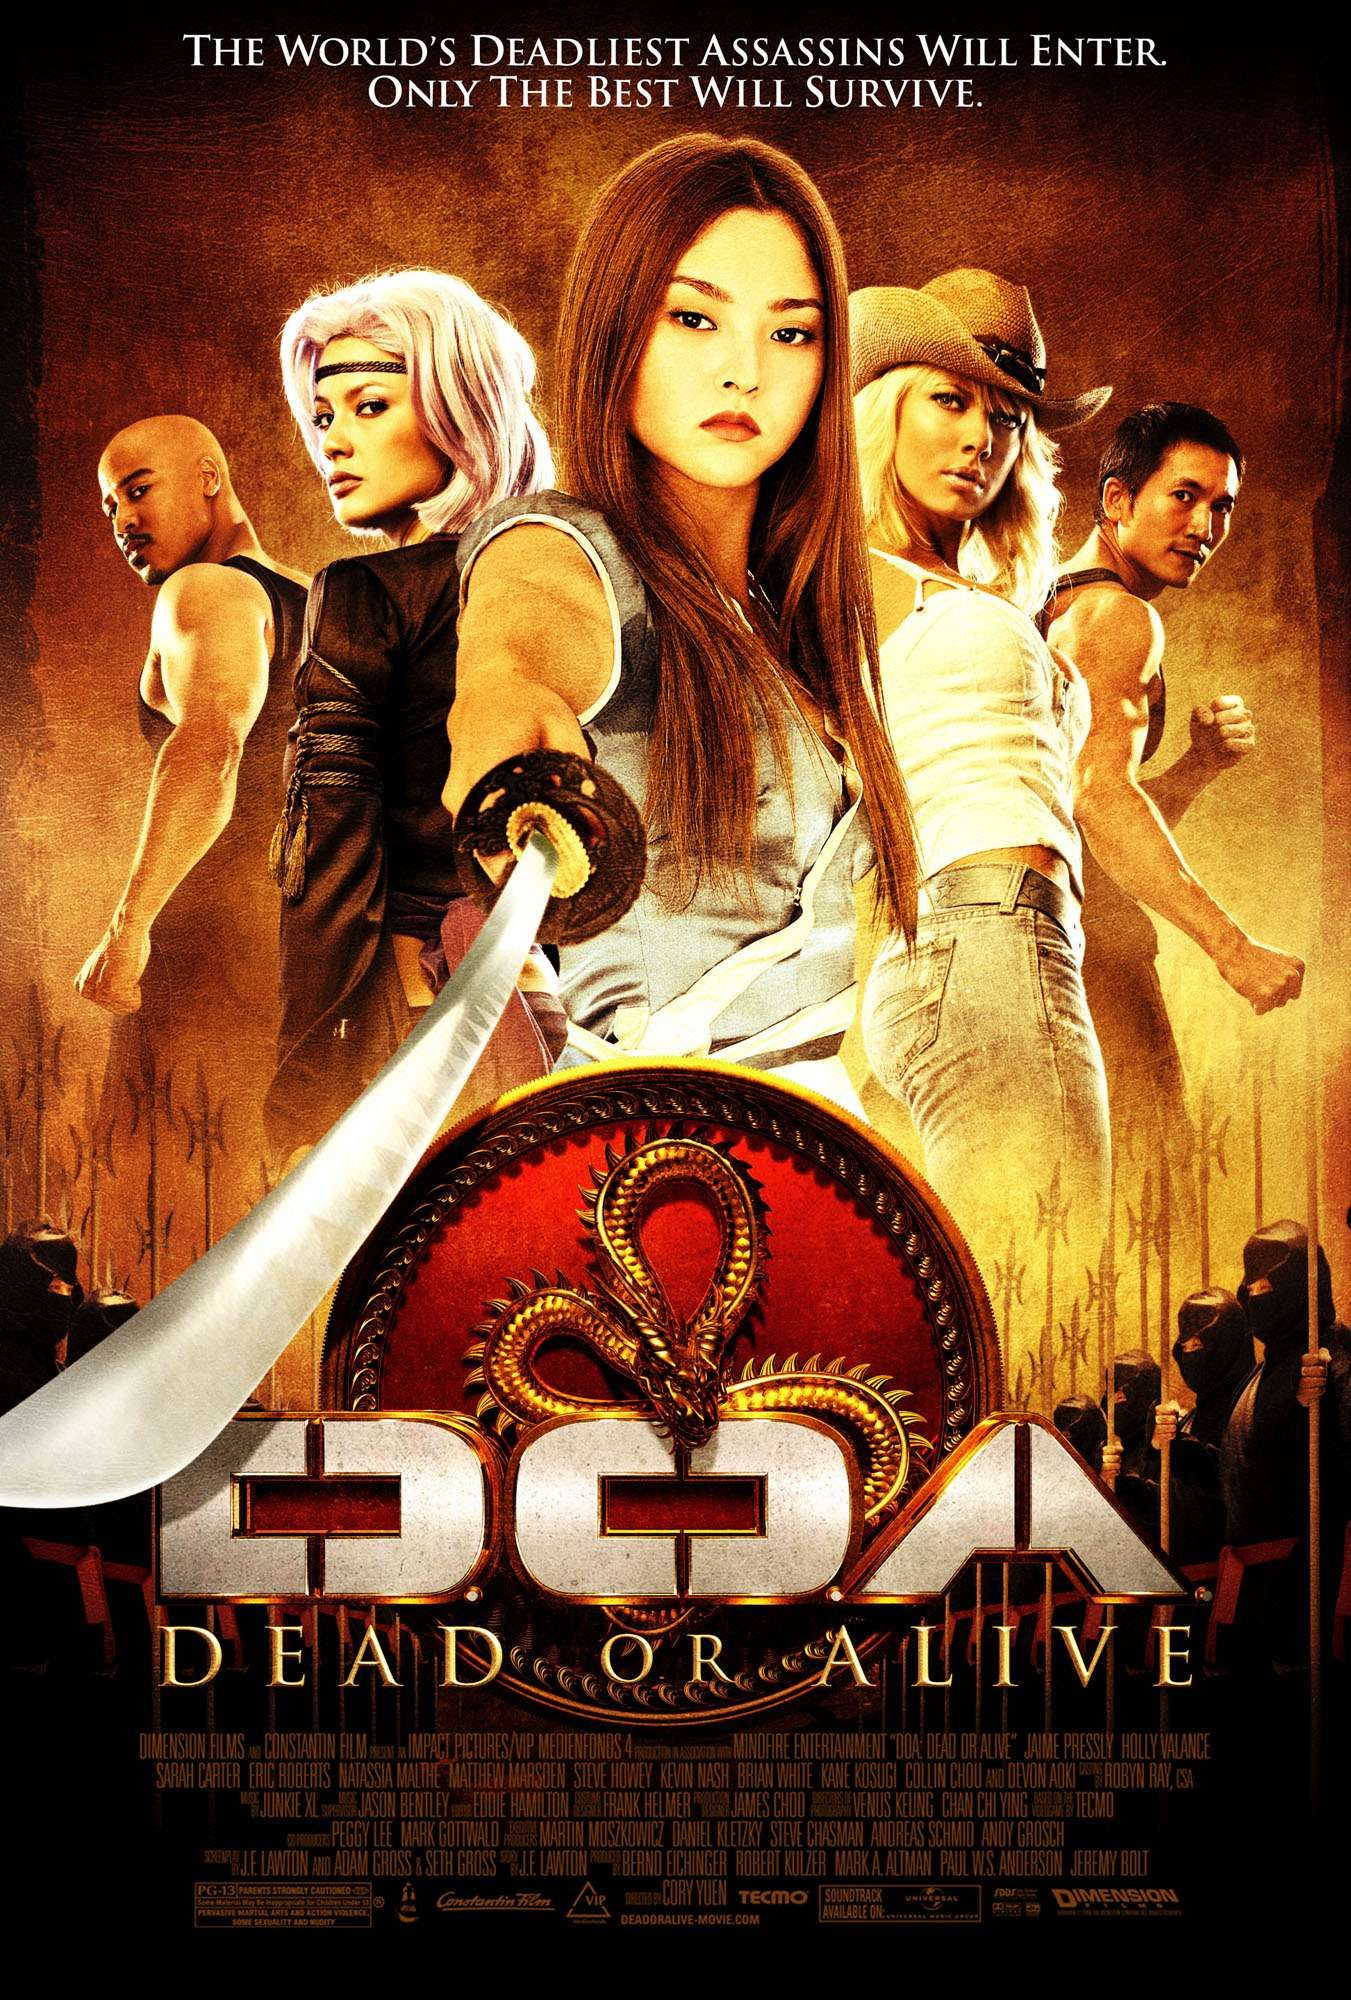 Doa Dead Or Alive 2006 Jpg 1 351 2 000 Pixels Full Movies Online